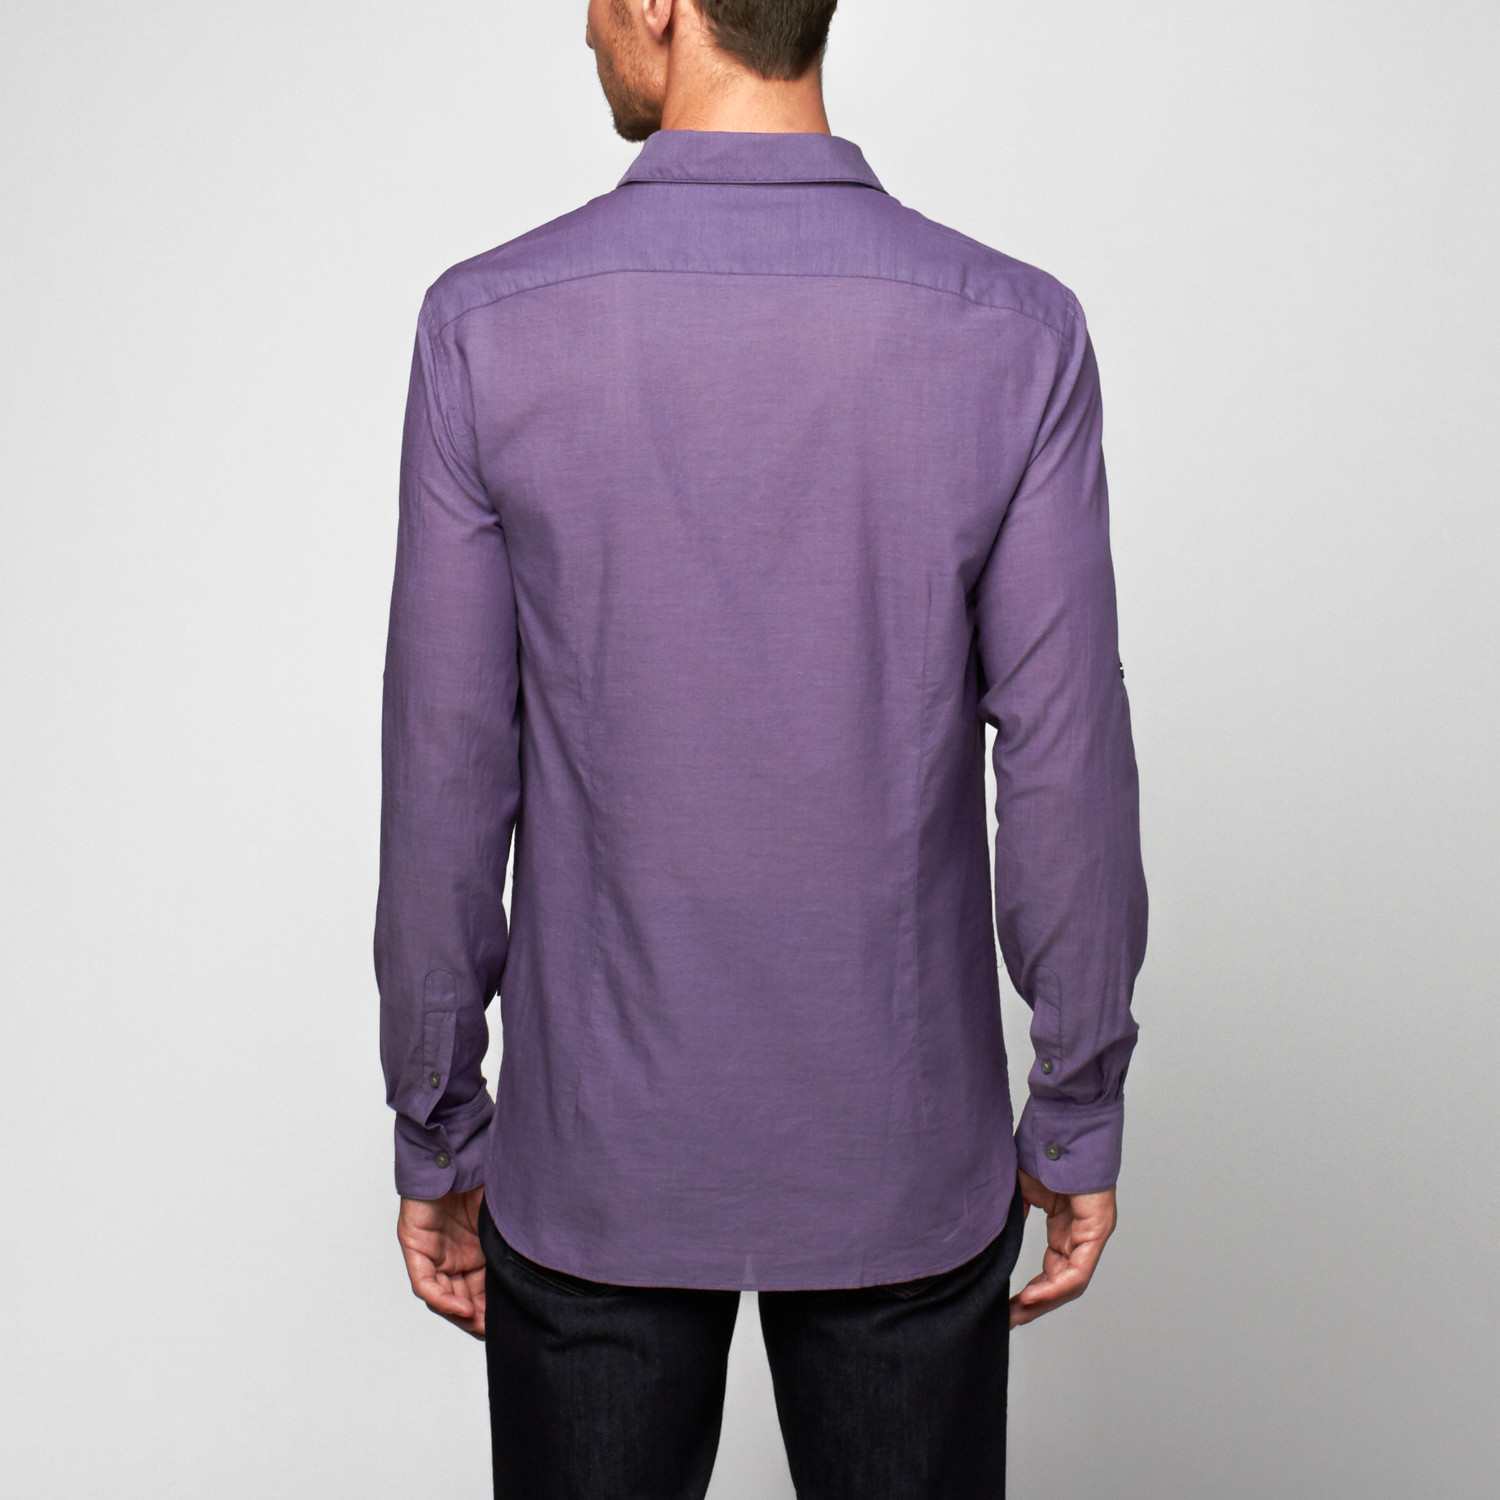 Double zipper pocket button up shirt wisteria s for Travel shirts with zipper pockets